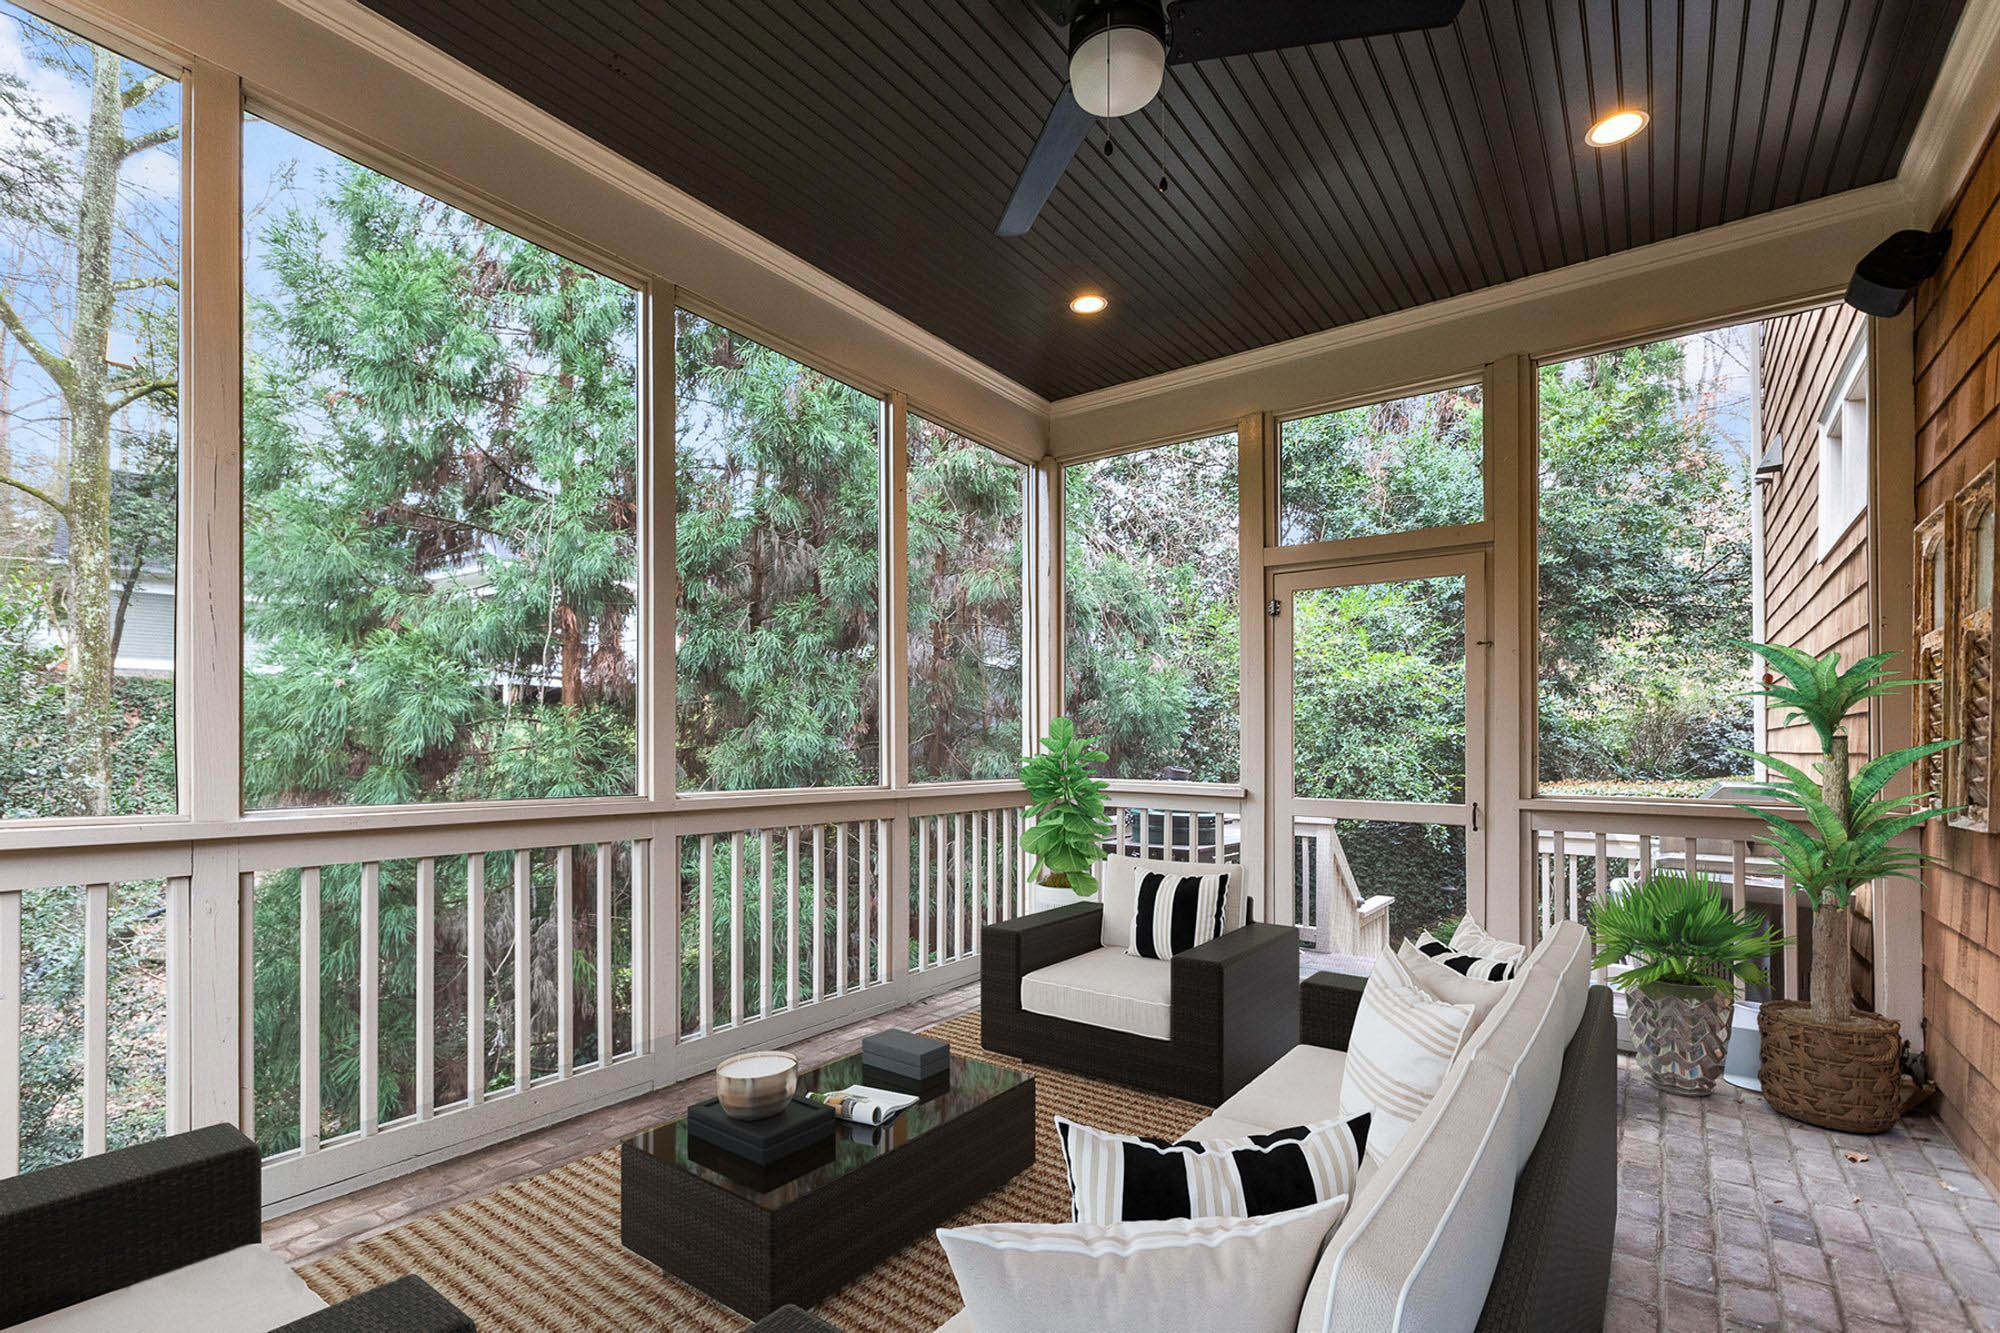 covered screened porch patio with red brick floor, black wicker furniture with white cushions.